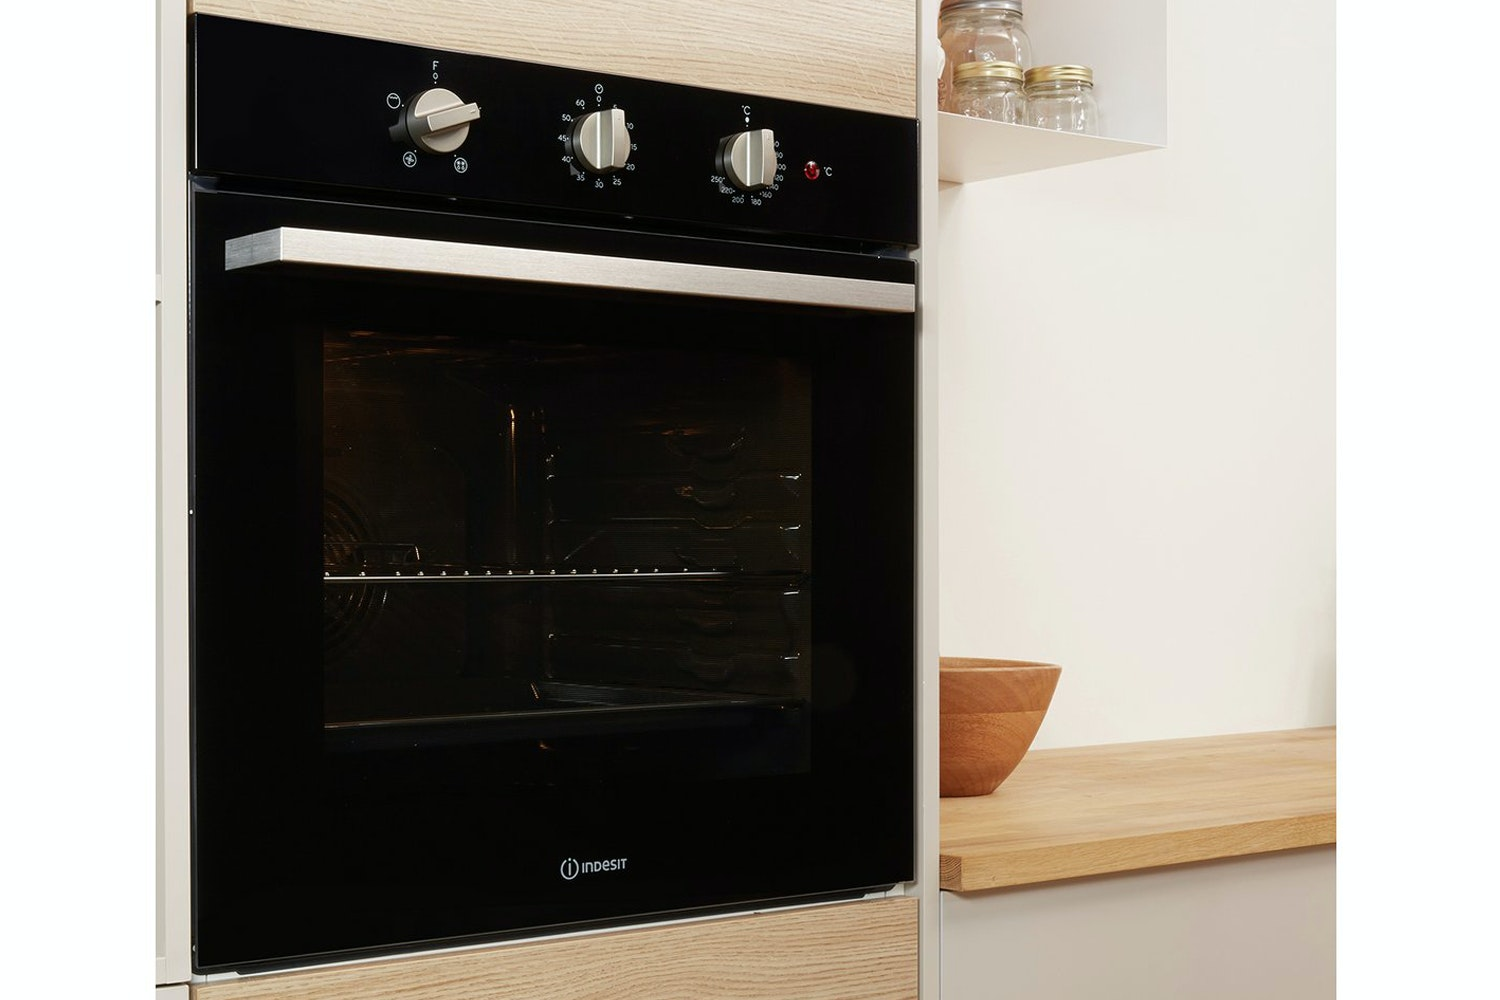 Indesit Electric Single Built-in Oven | IFW6330BL